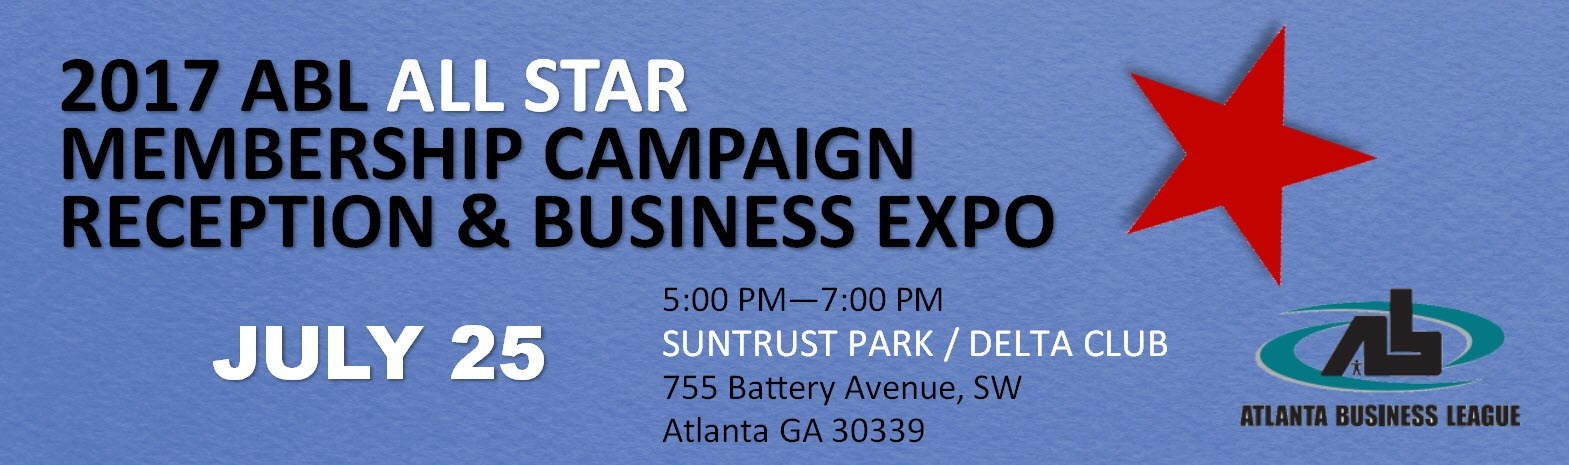 2017 ABL ALL-STAR MEMBERSHIP CAMPAIGN RECEPTION & BUSINESS EXPO